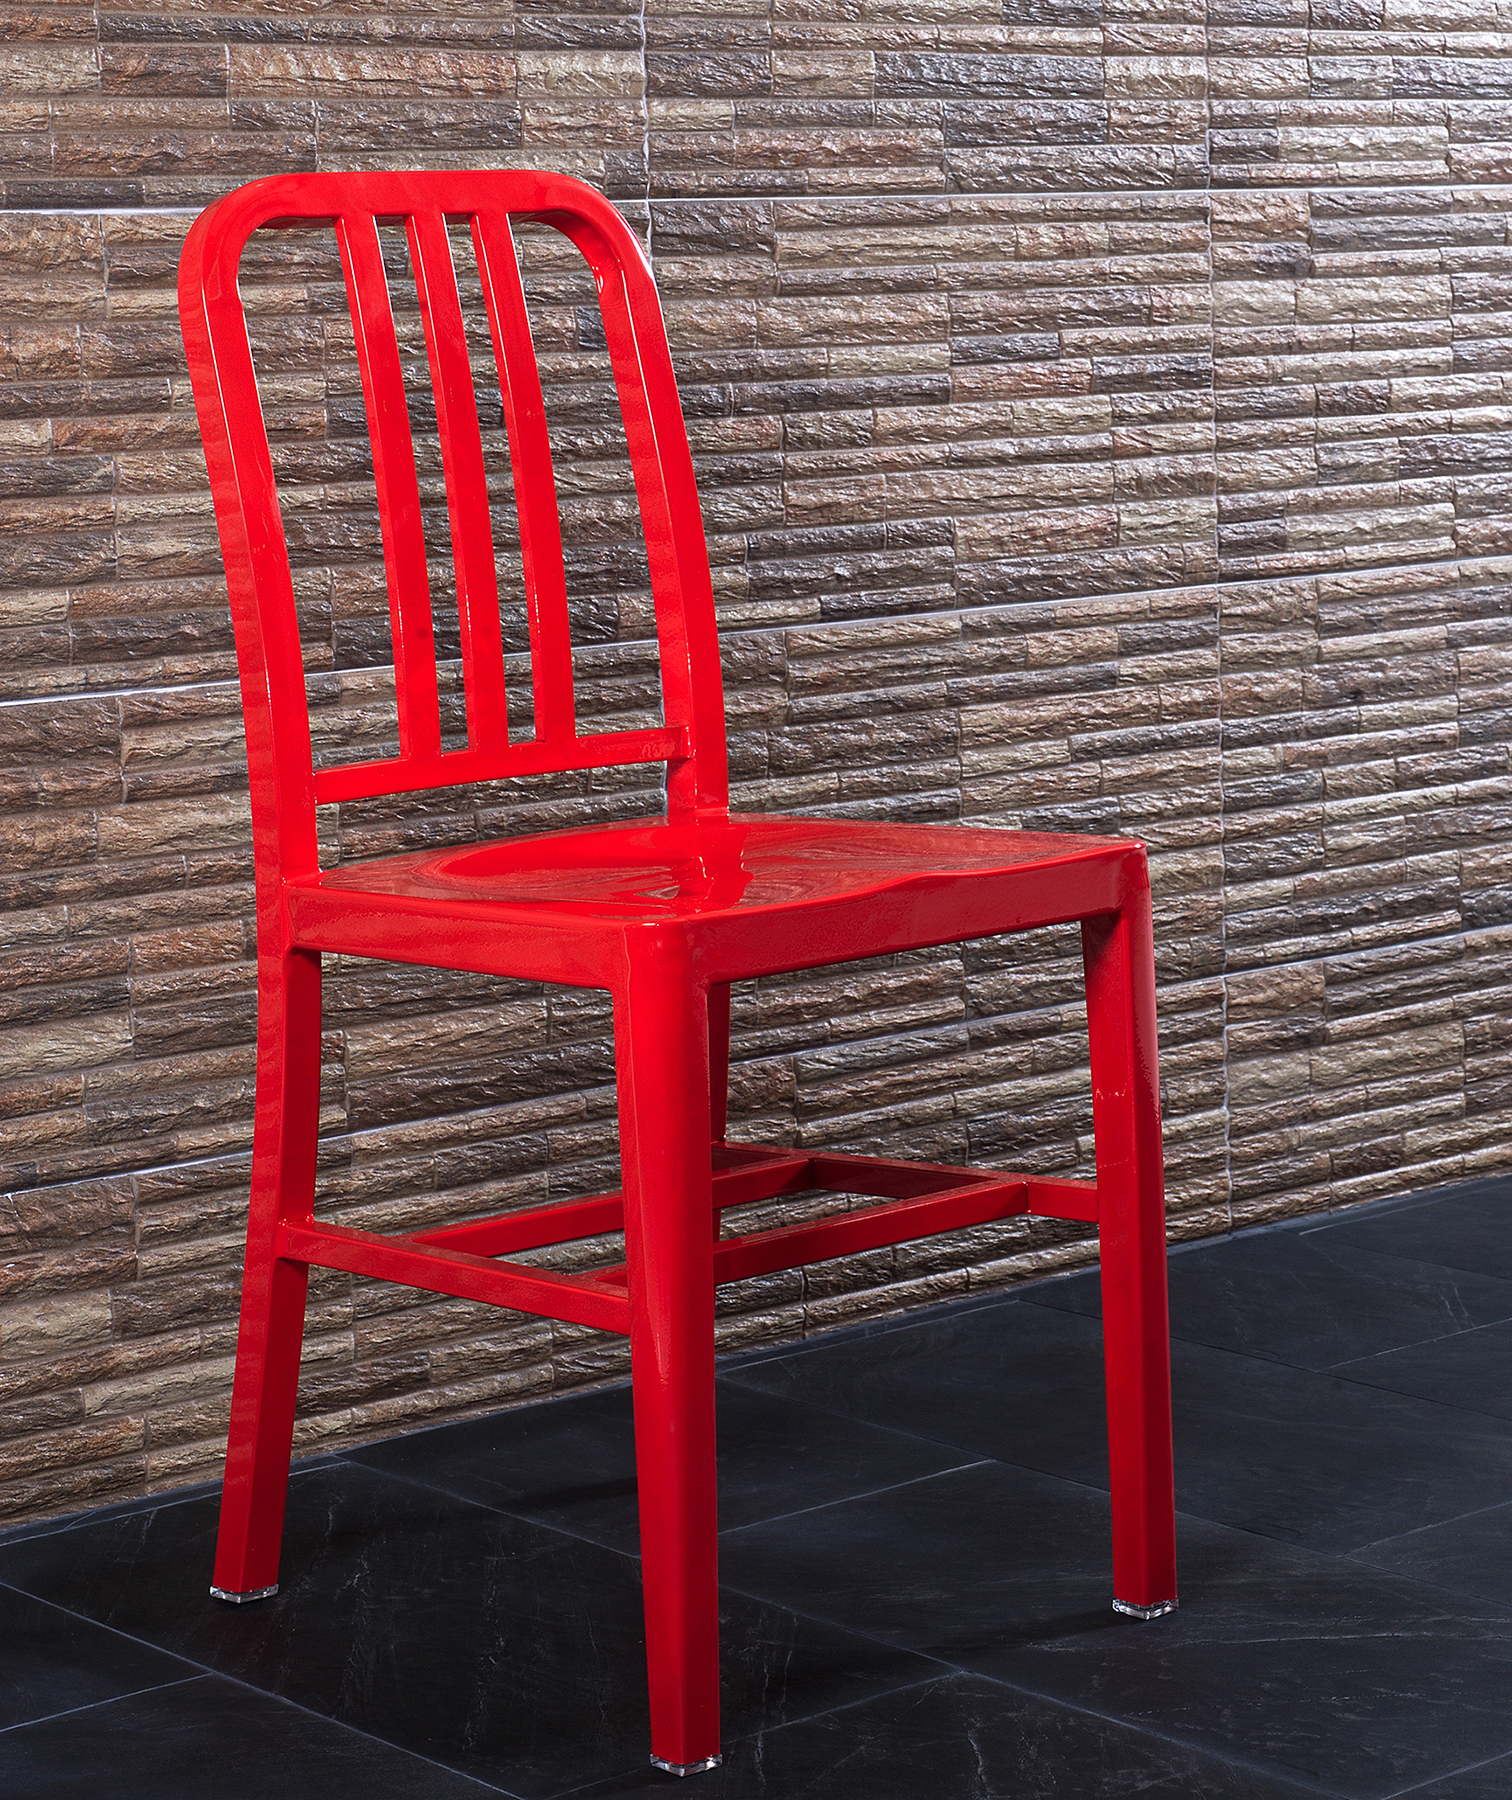 Red painted metal chair